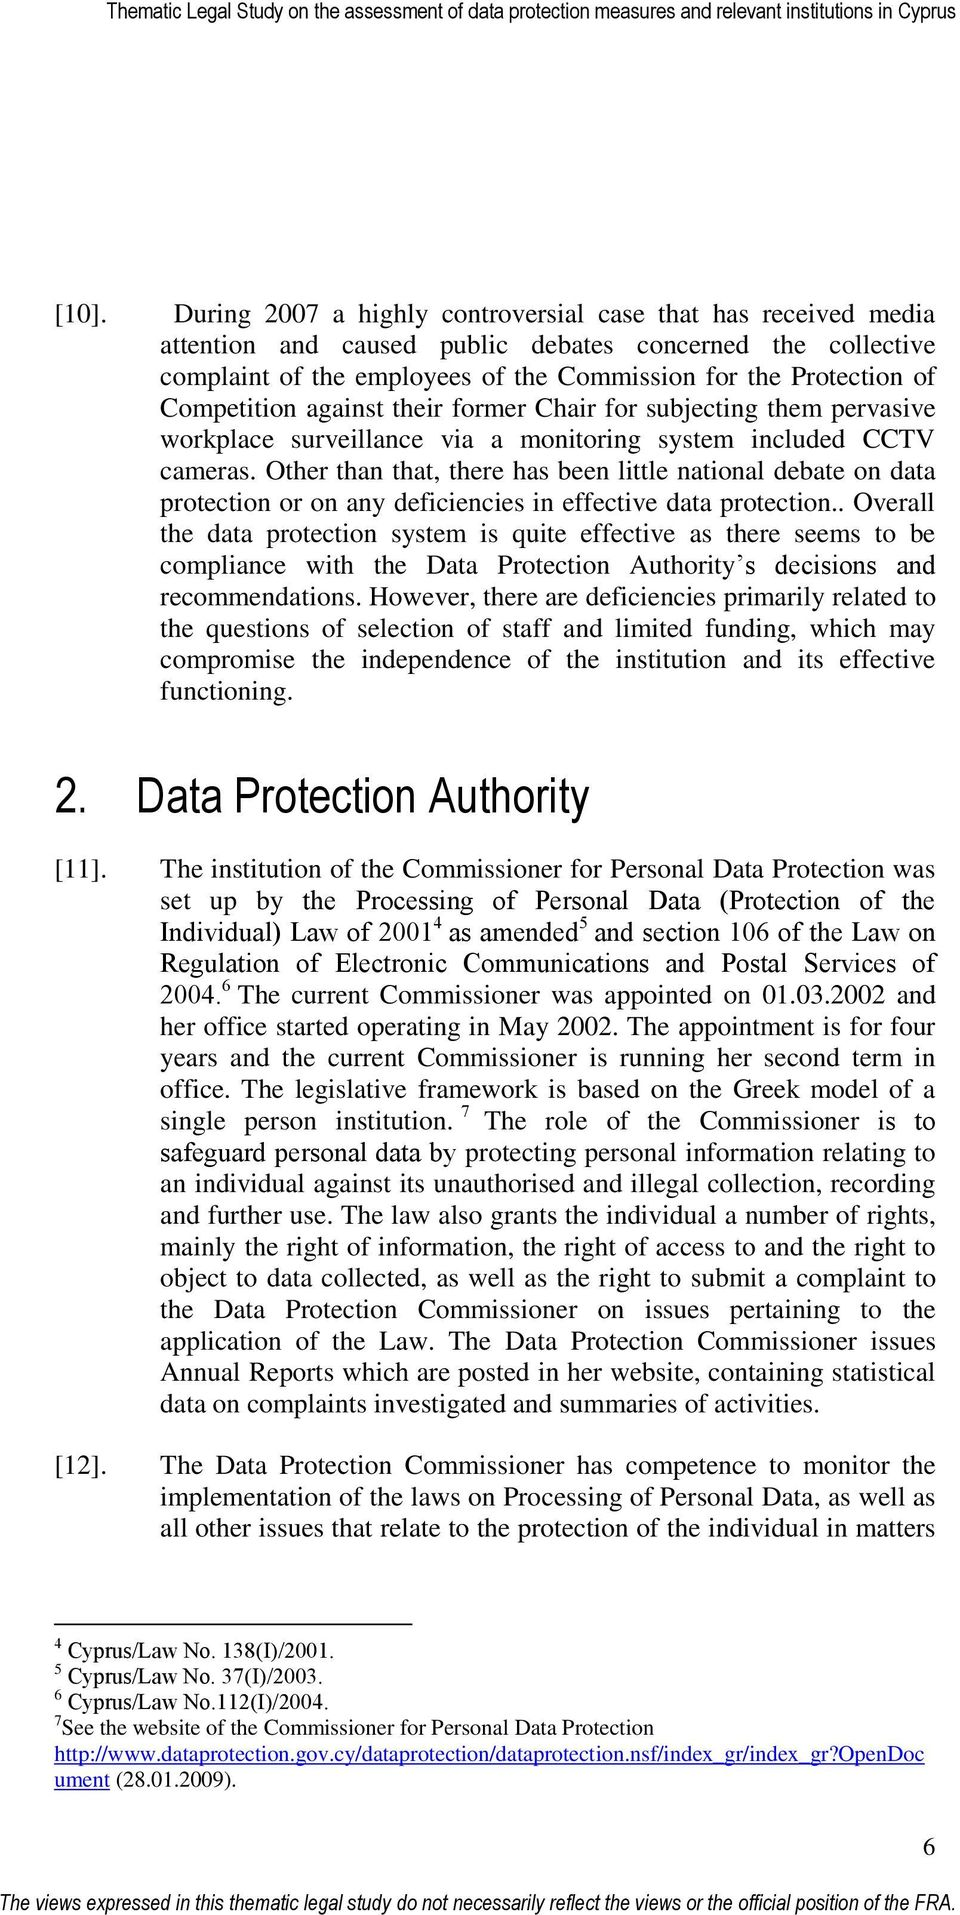 Other than that, there has been little national debate on data protection or on any deficiencies in effective data protection.